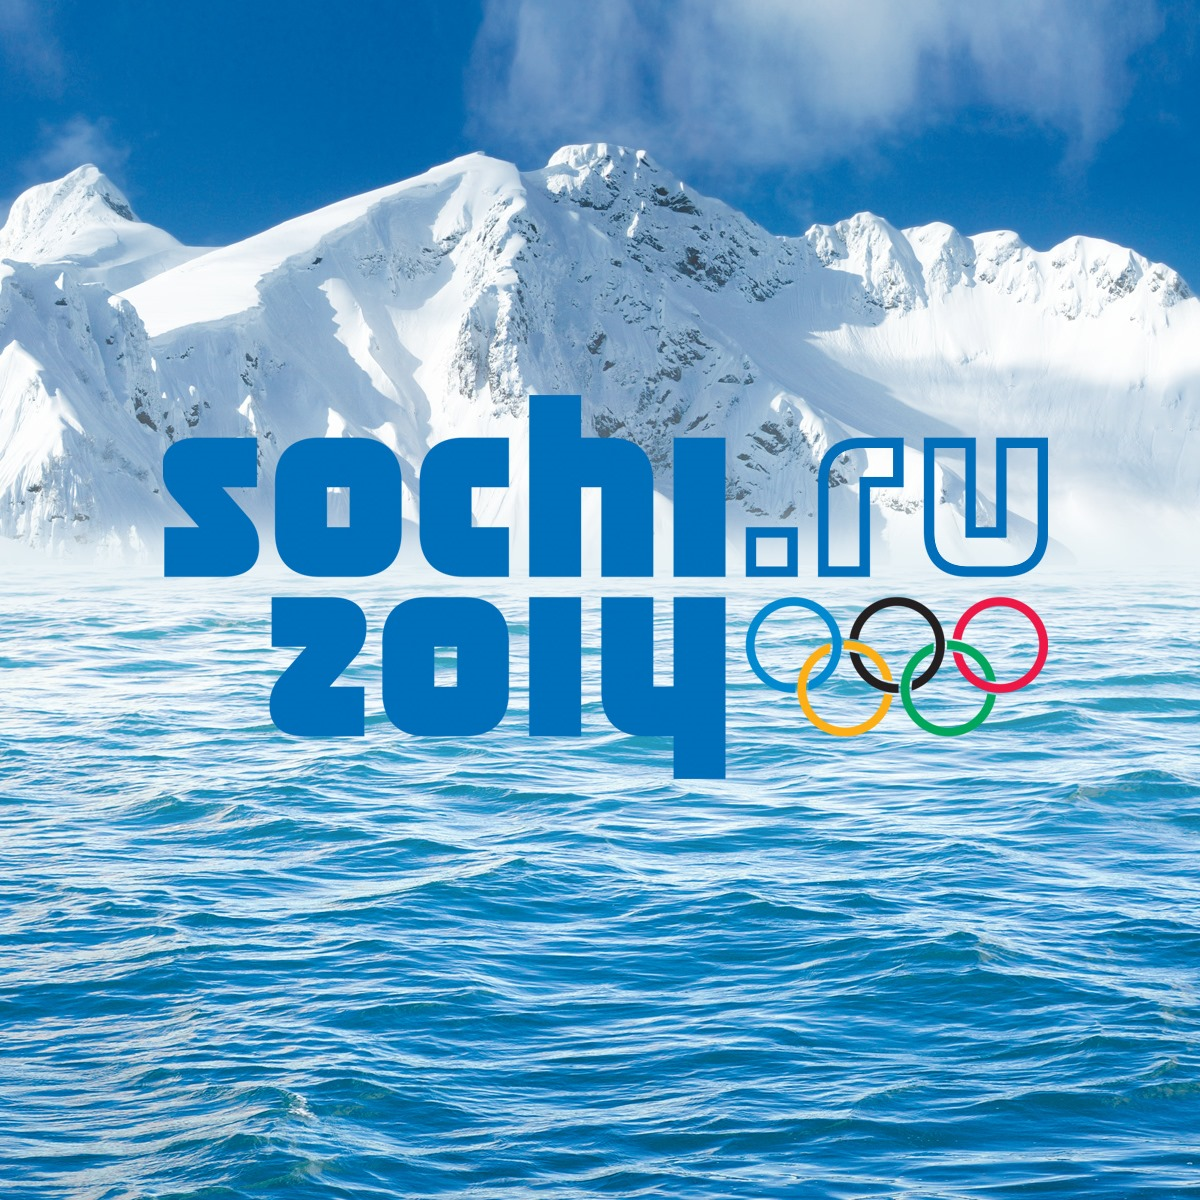 Music for the 2014 Winter Olympics